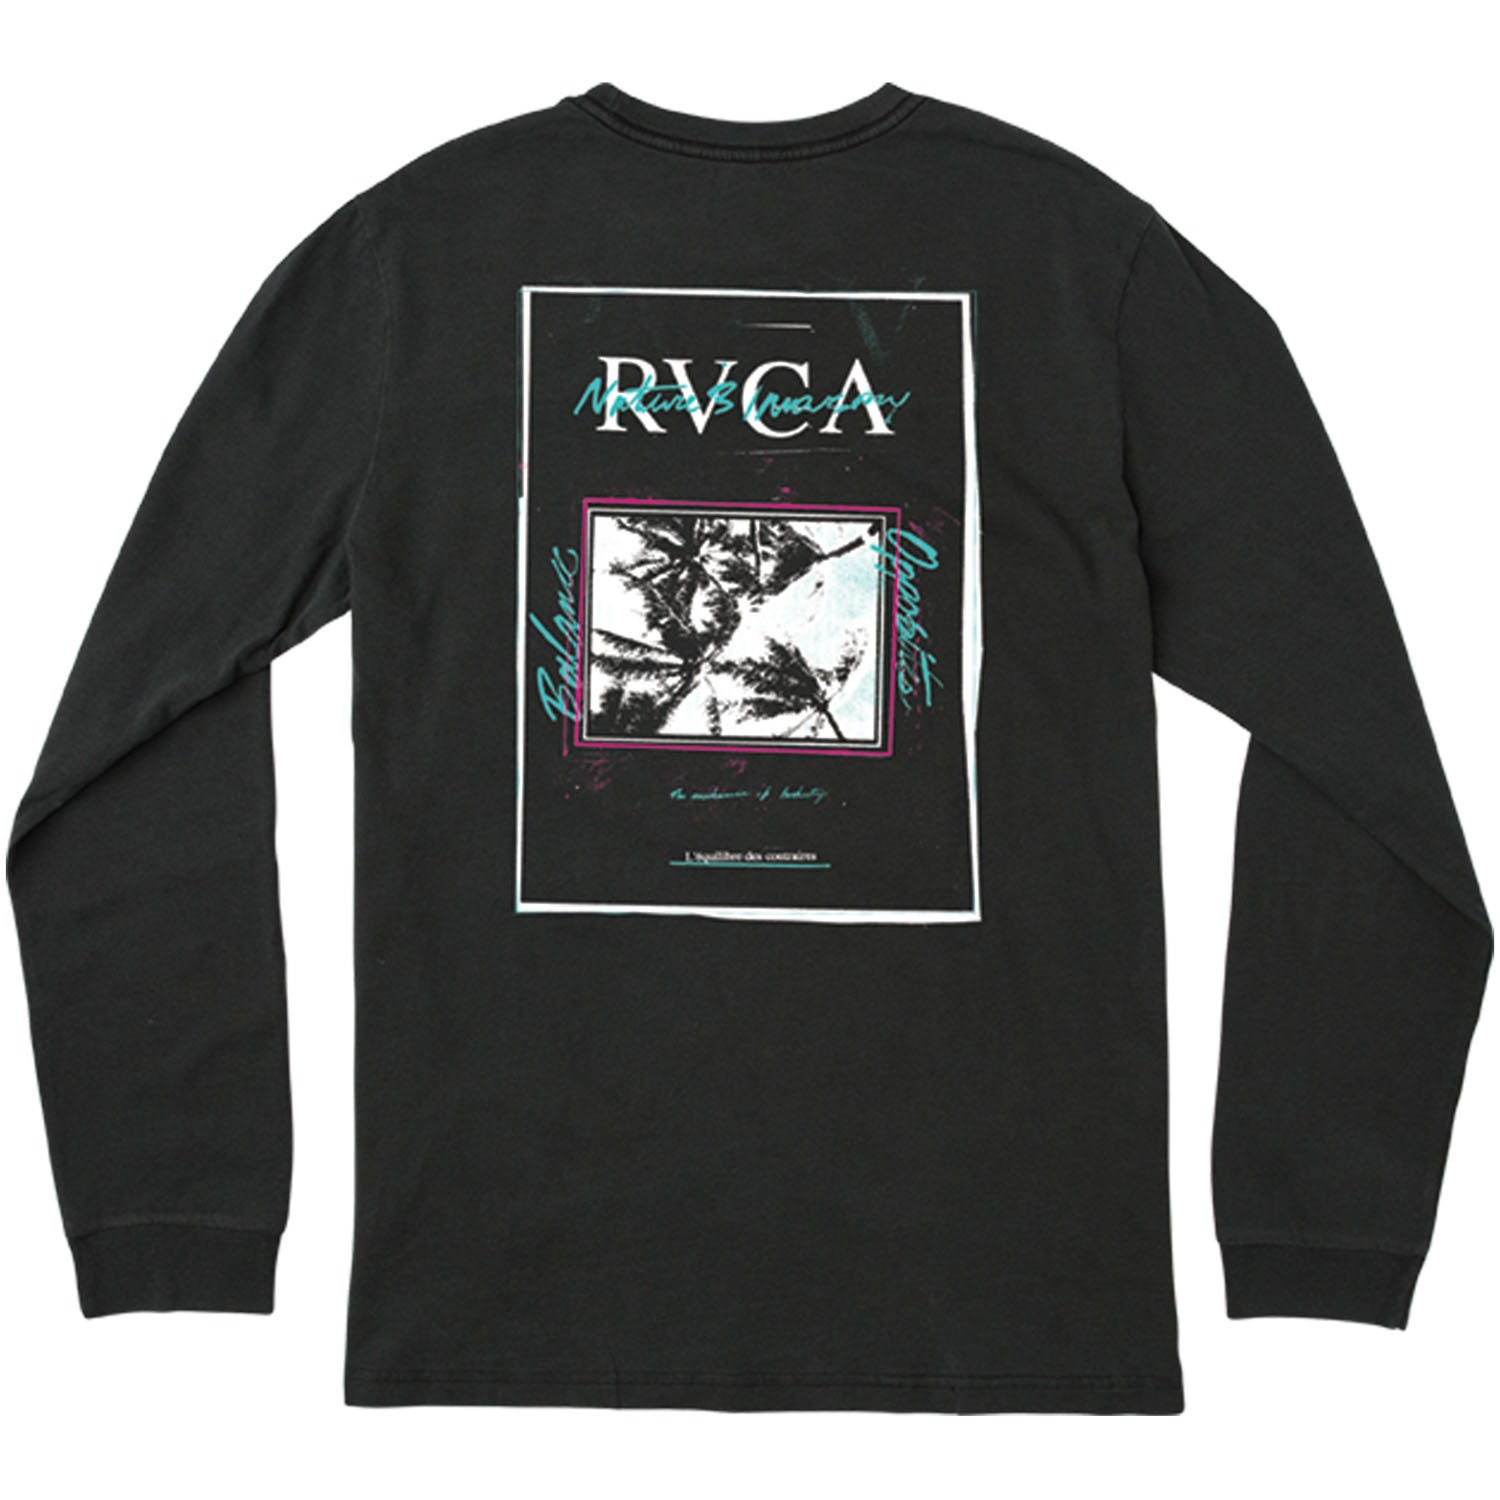 182dfe7ba Amazon.com: RVCA Men's Balance Flyer Long Sleeve T-Shirt: Clothing